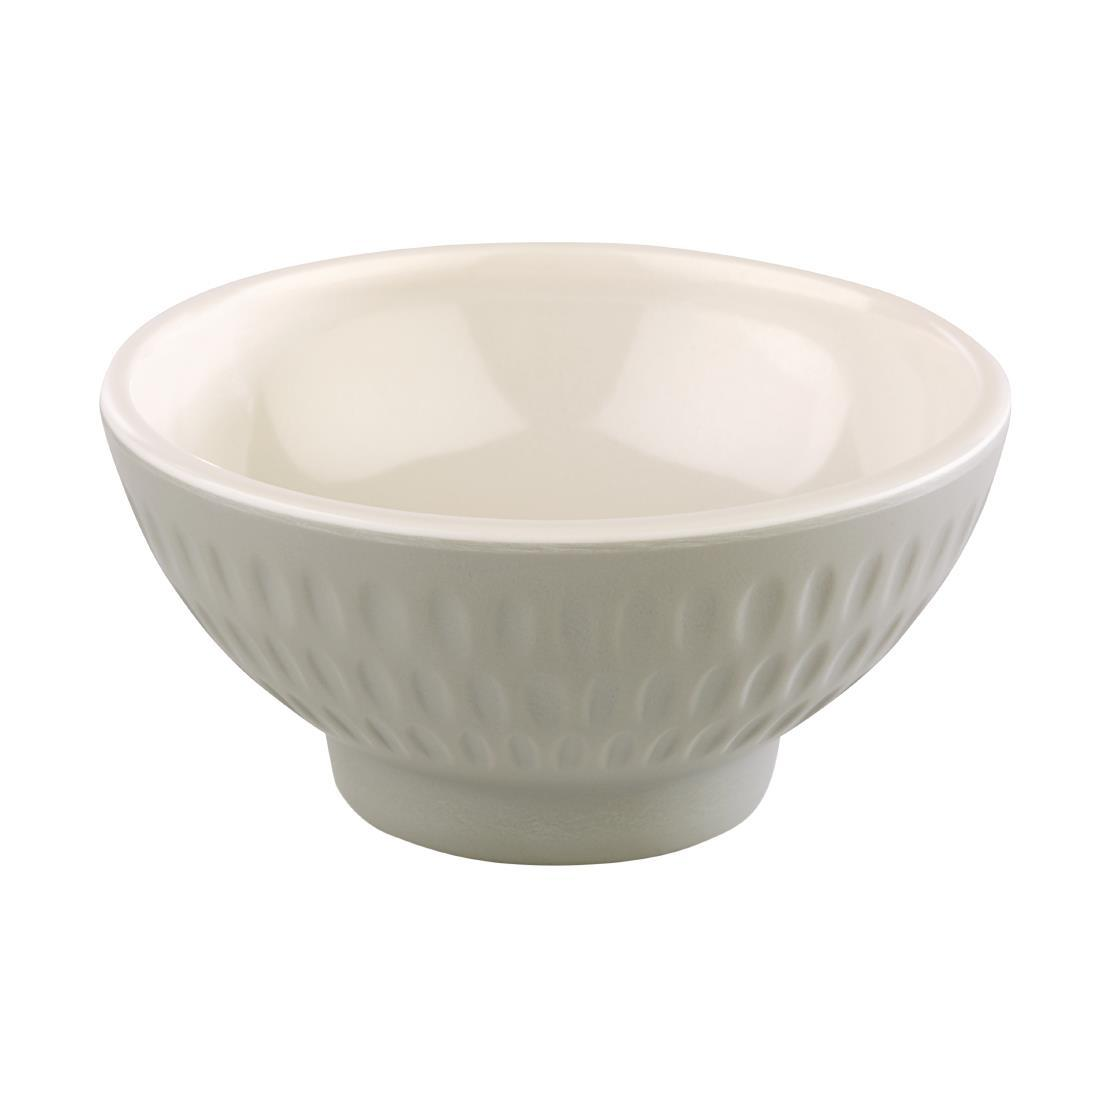 DW002 - APS Asia+ Bowl Cream 95mm - Each - DW002